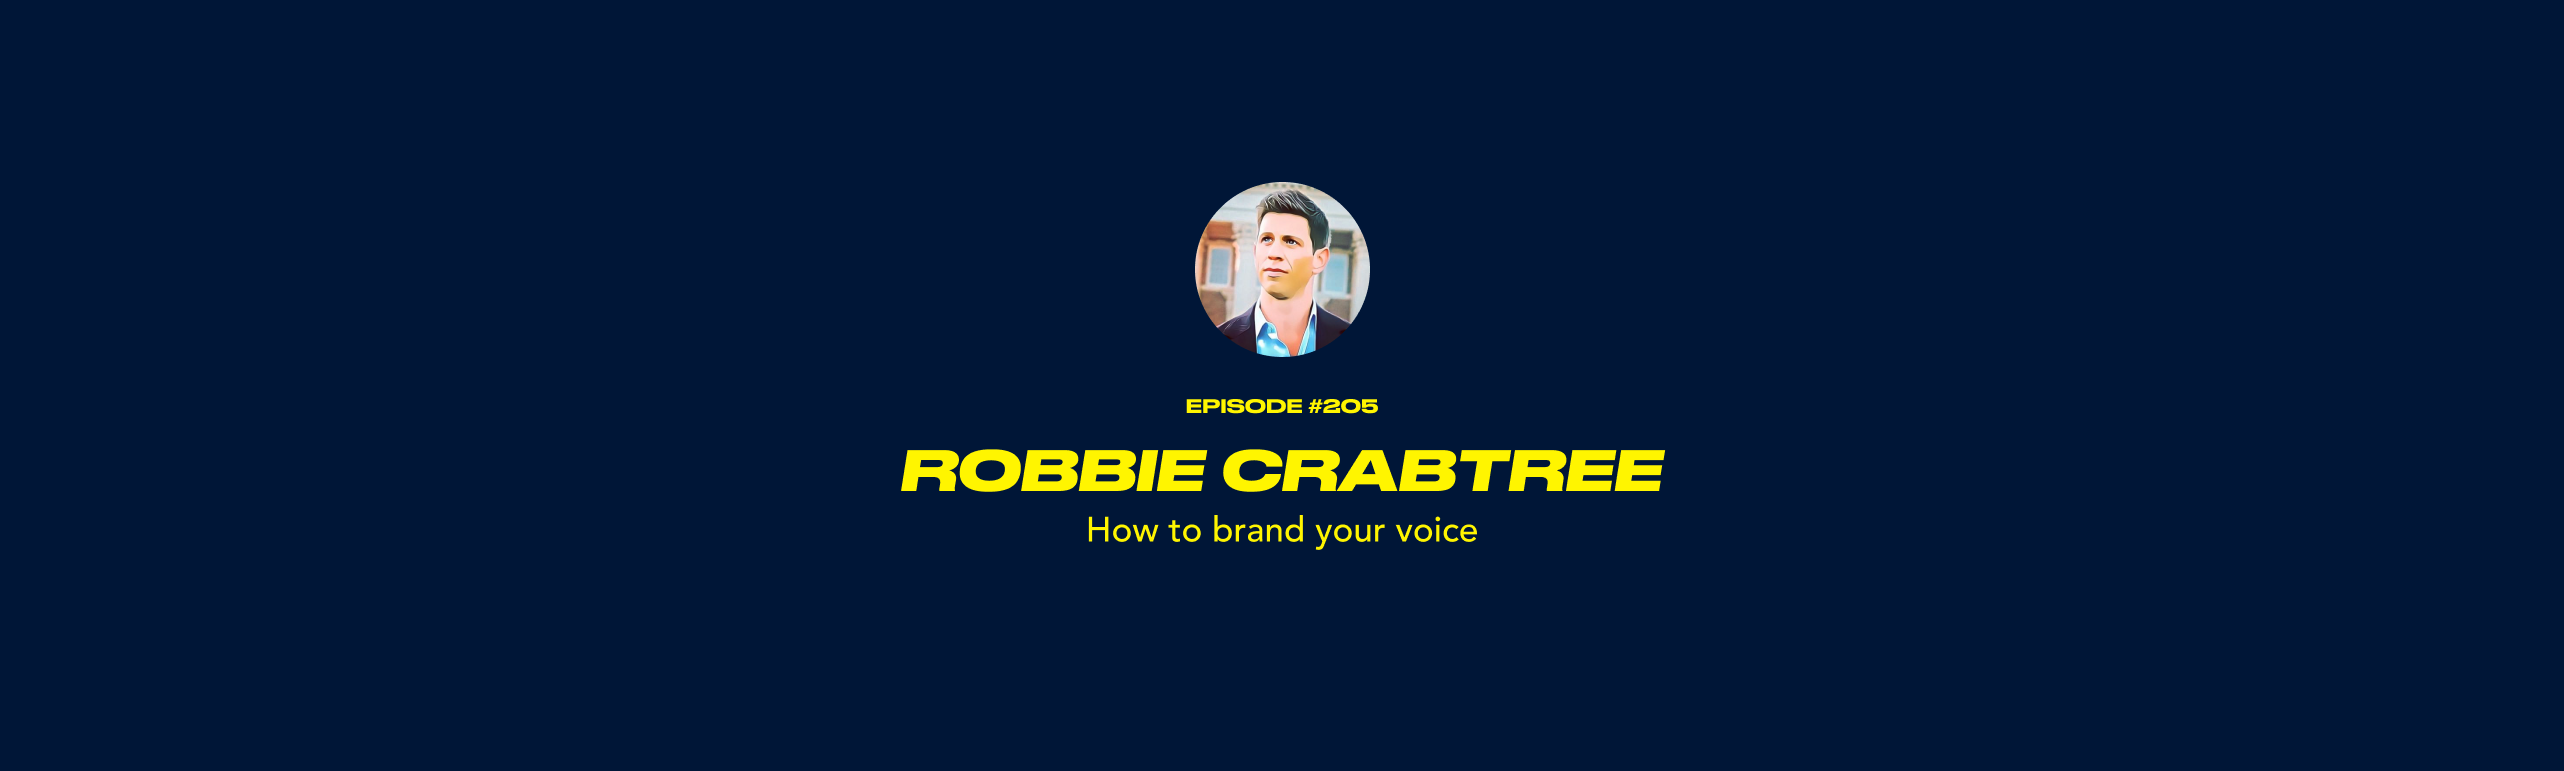 Robbie Crabtree - How to brand your voice